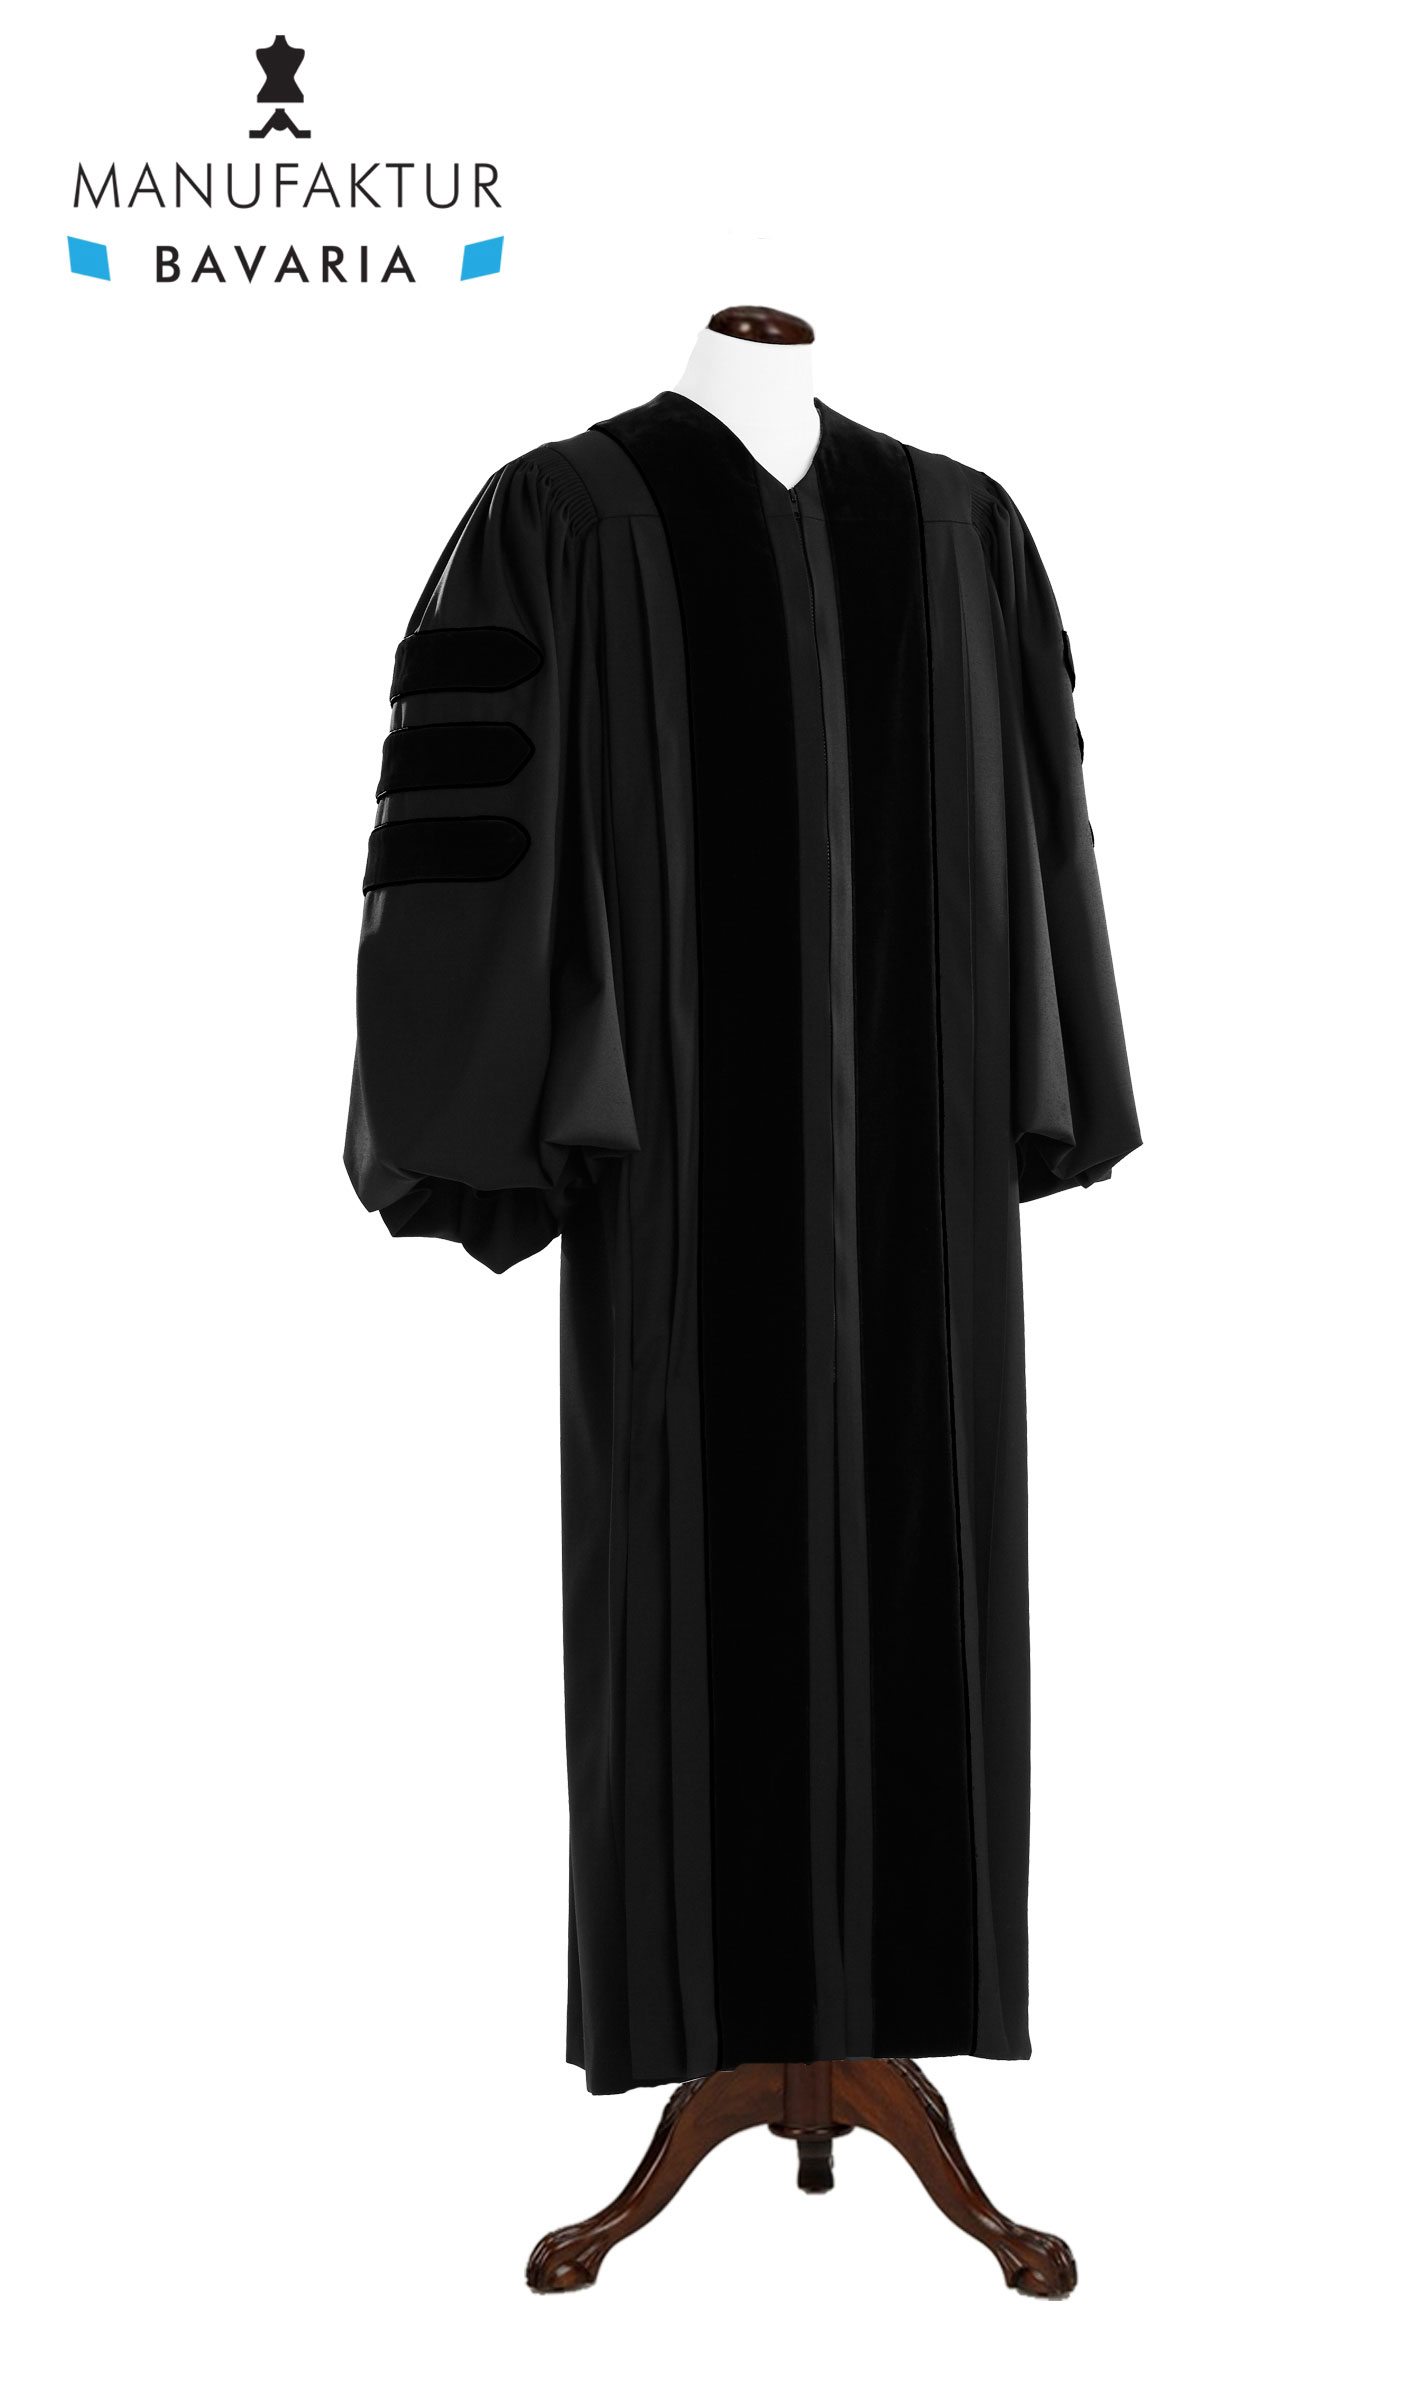 Deluxe Schwarz Clergy / Pulpit Robe, royal regalia